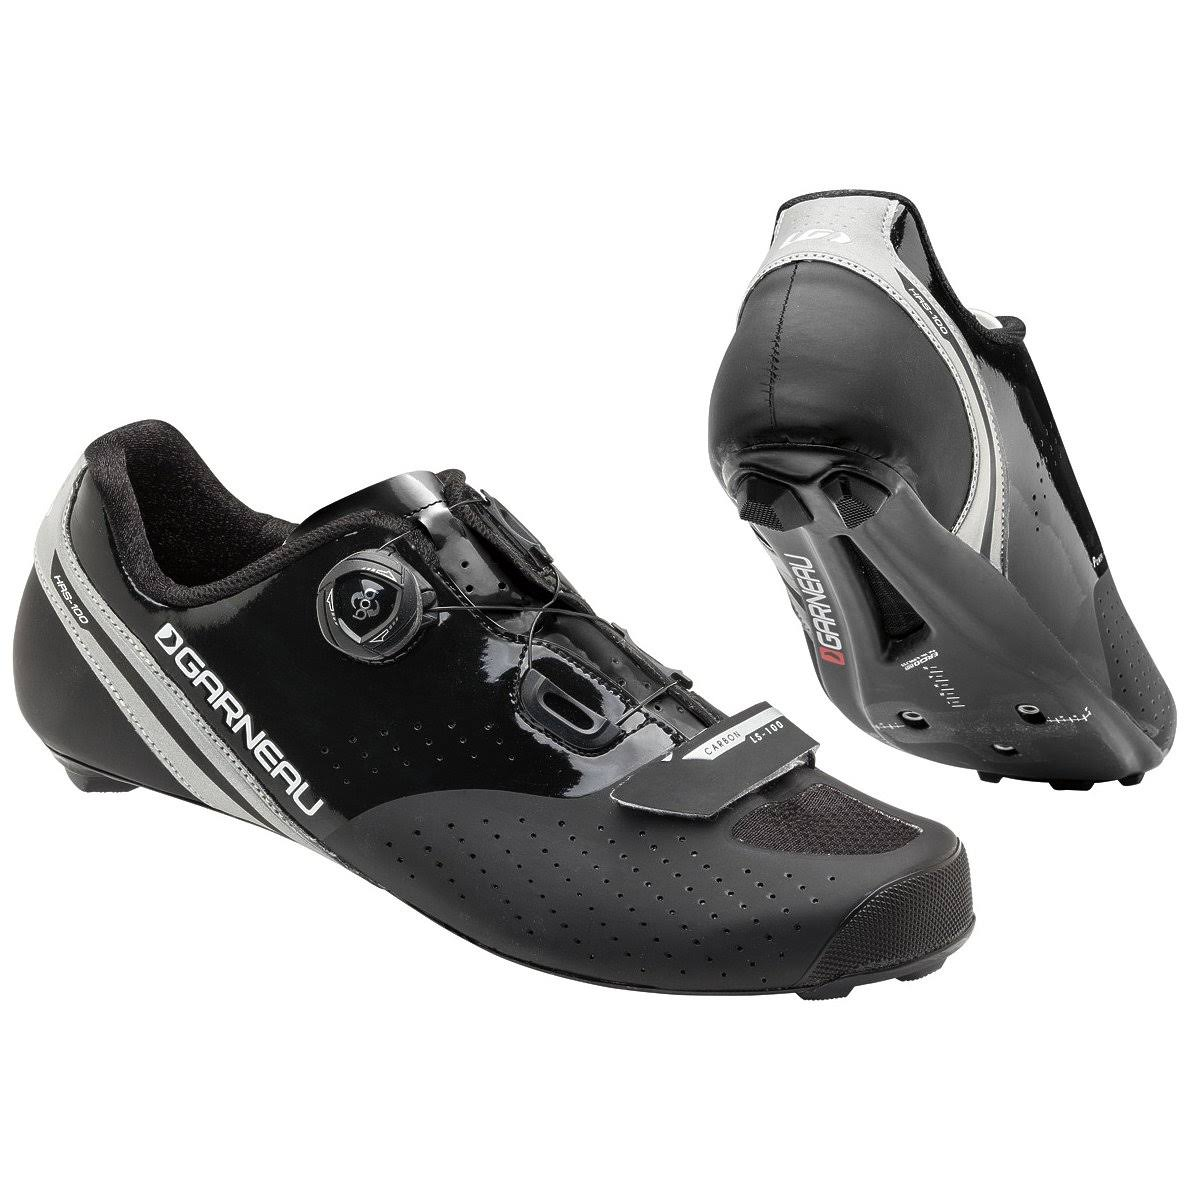 Louis Garneau Men's Carbon LS-100 II Cycling Shoe-Black